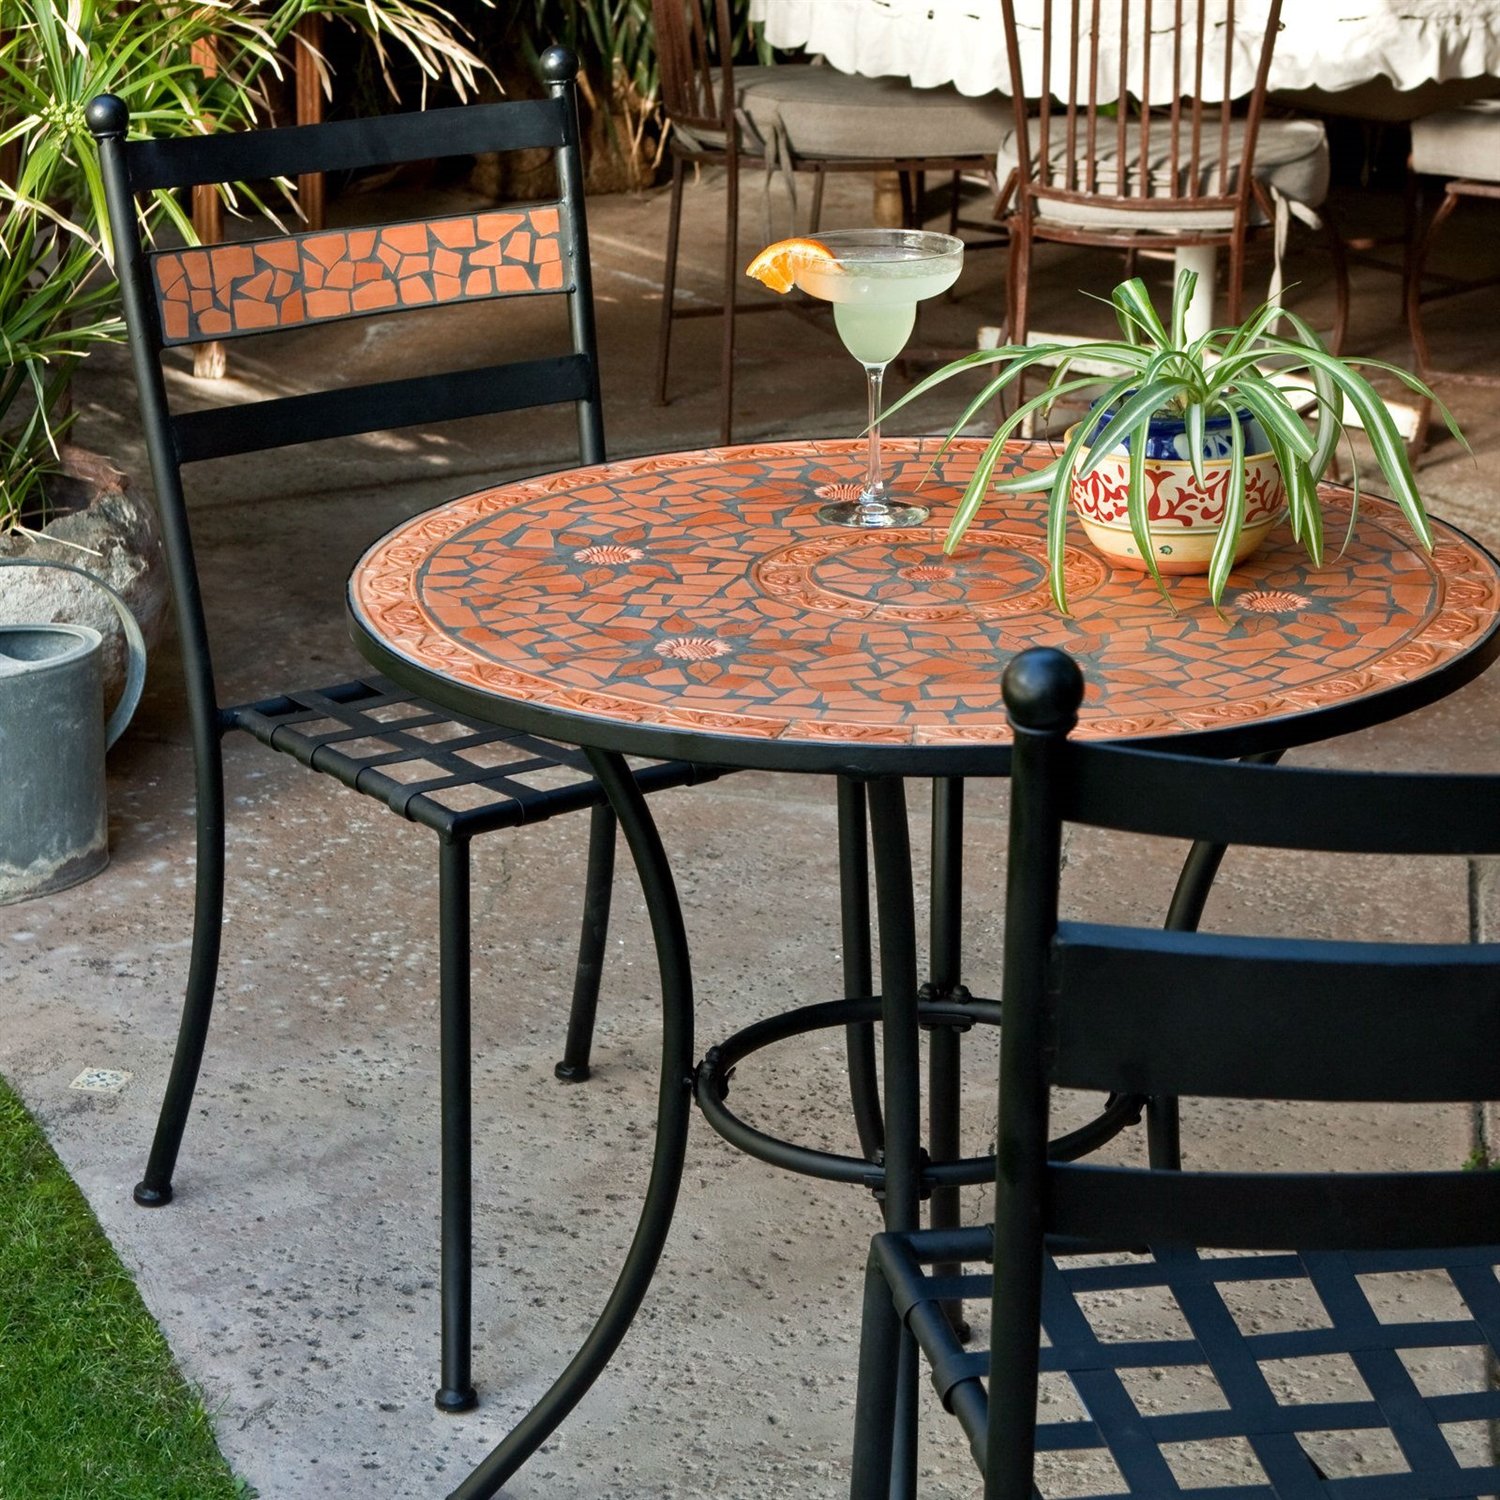 3-piece Black Metal Patio Bistro Set With Terra Cotta